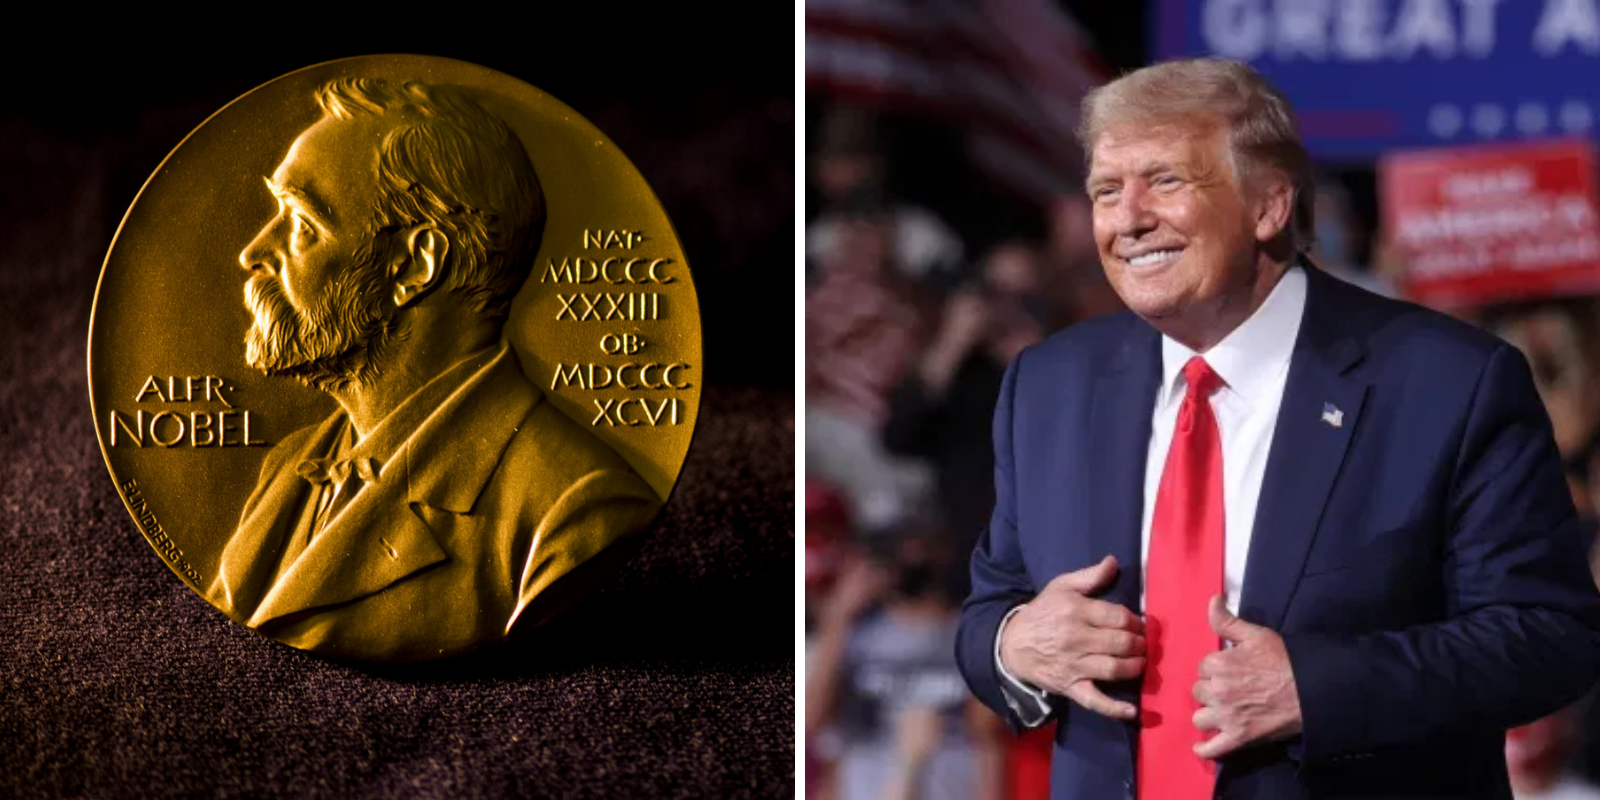 BREAKING: Trump nominated for Nobel Peace Prize